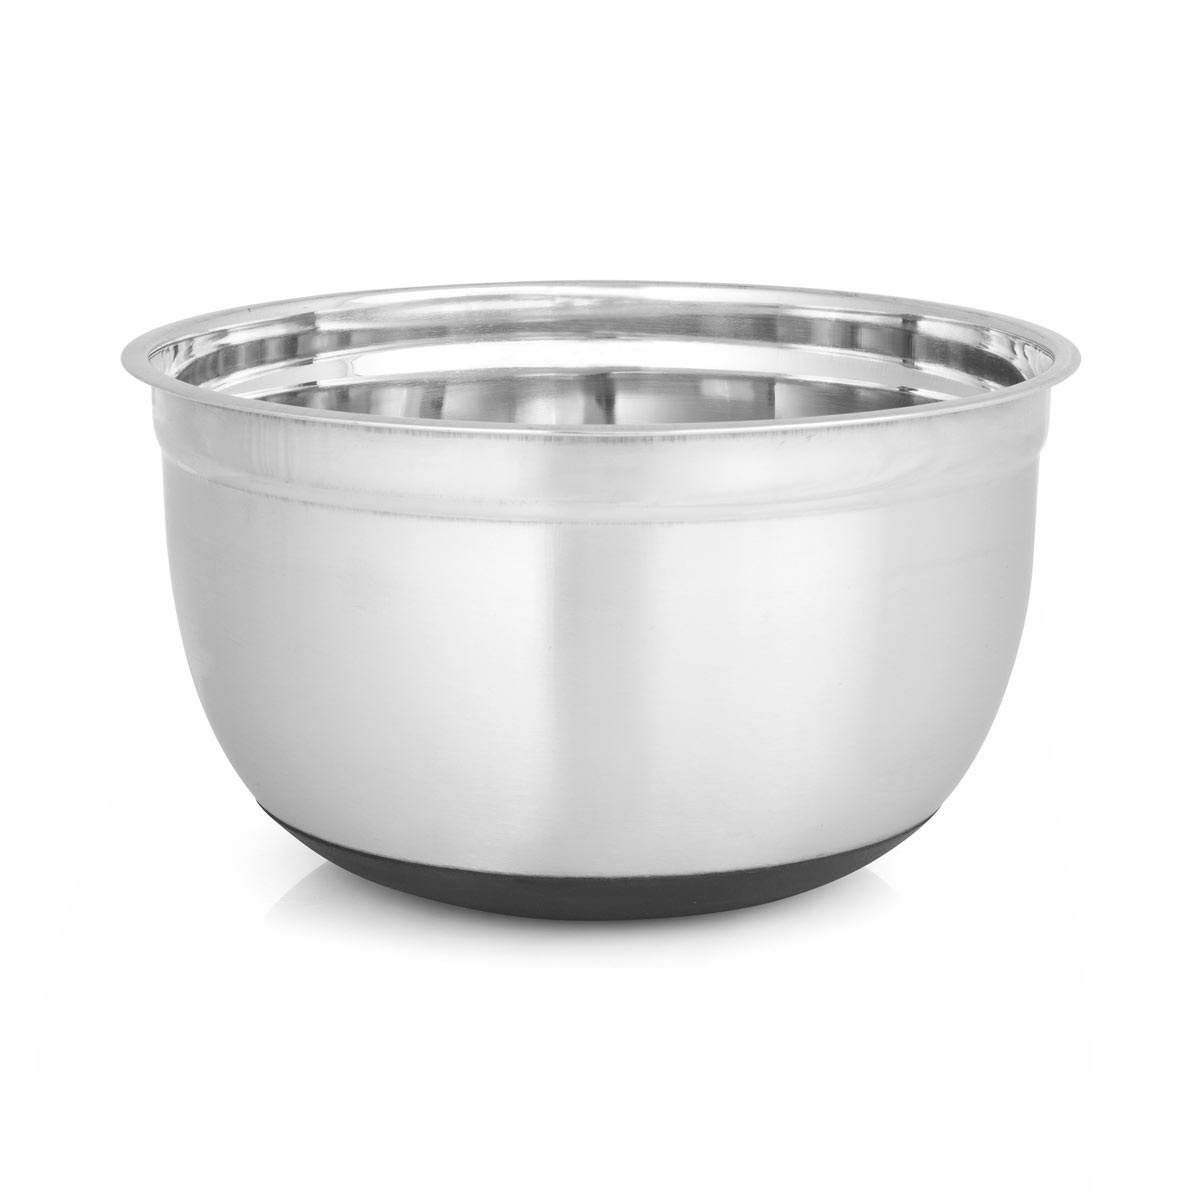 8 Qt. Stainless Steel Mixing Bowl with Black Silicone Base by